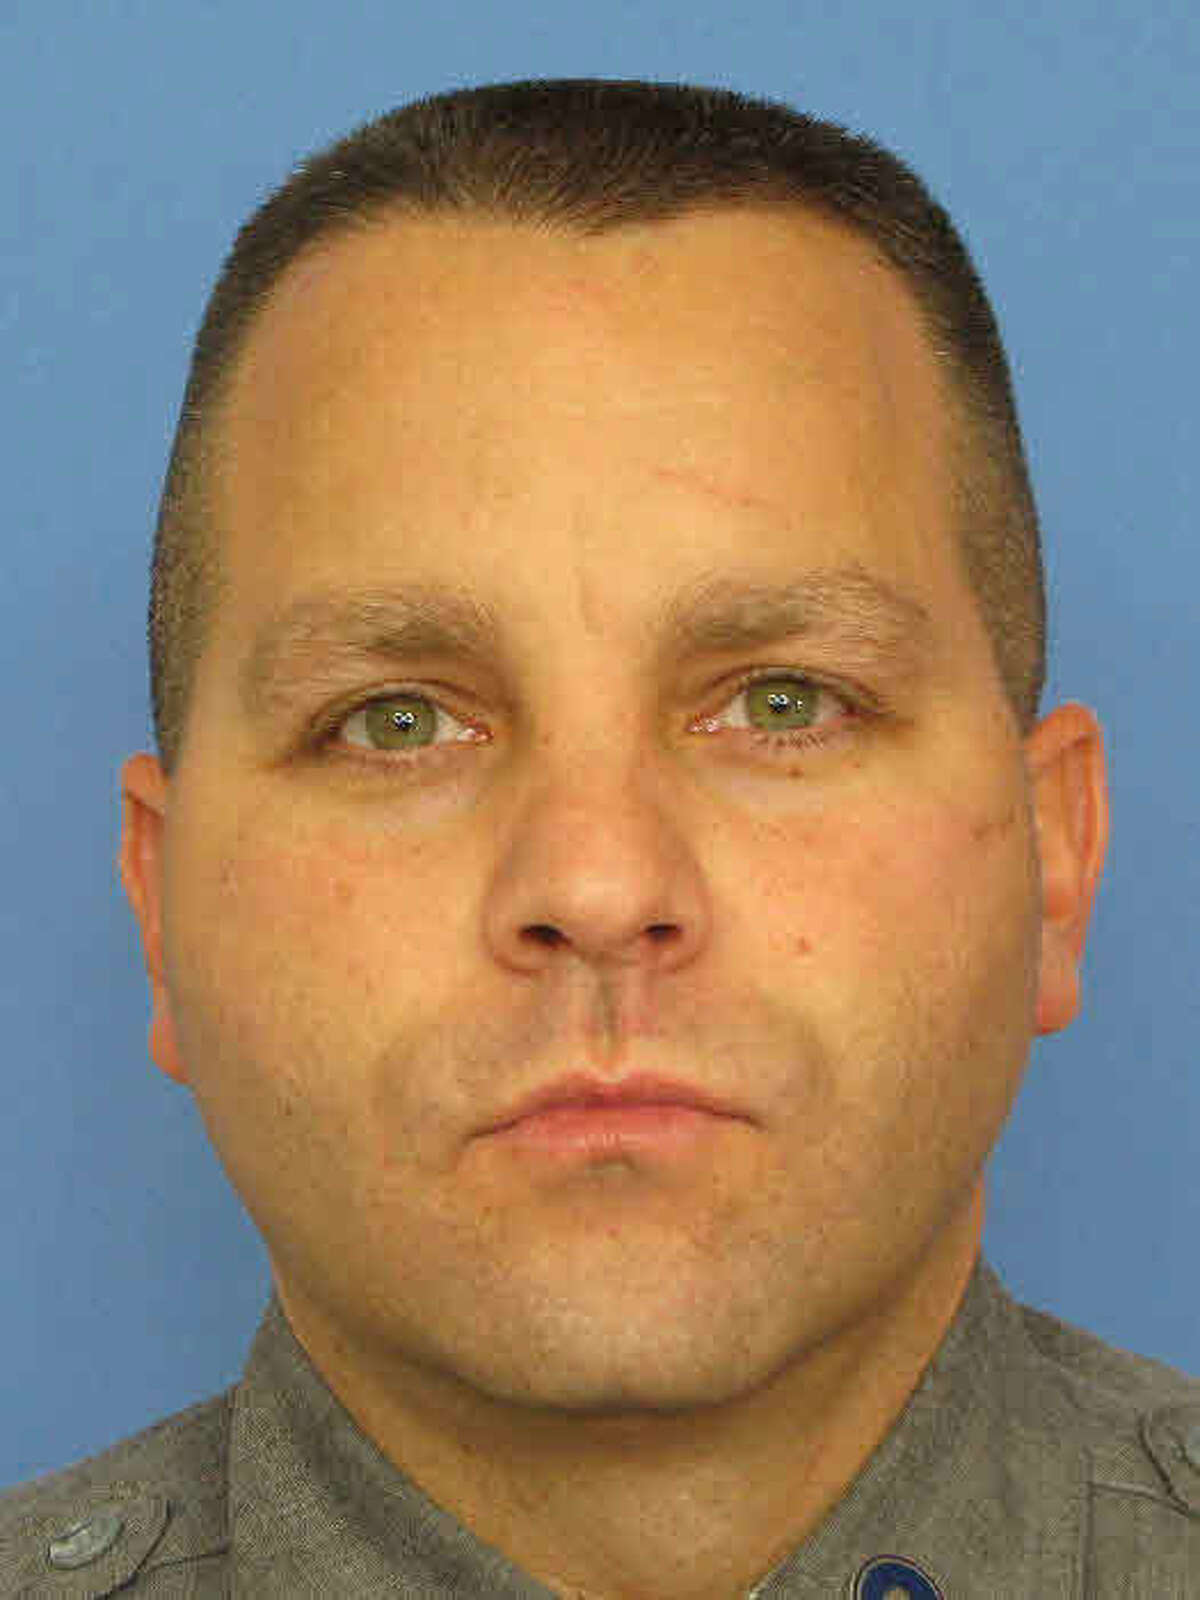 Trooper Brian S. Falb, who spent his 18-year career patrolling the North Country, died Monday, March 13, 2017, from a 9/11-related illness. Falb was assigned to the World Trade Center site following the terrorist attack on September 11, 2001 to aid in the search and recovery efforts. (State Police)